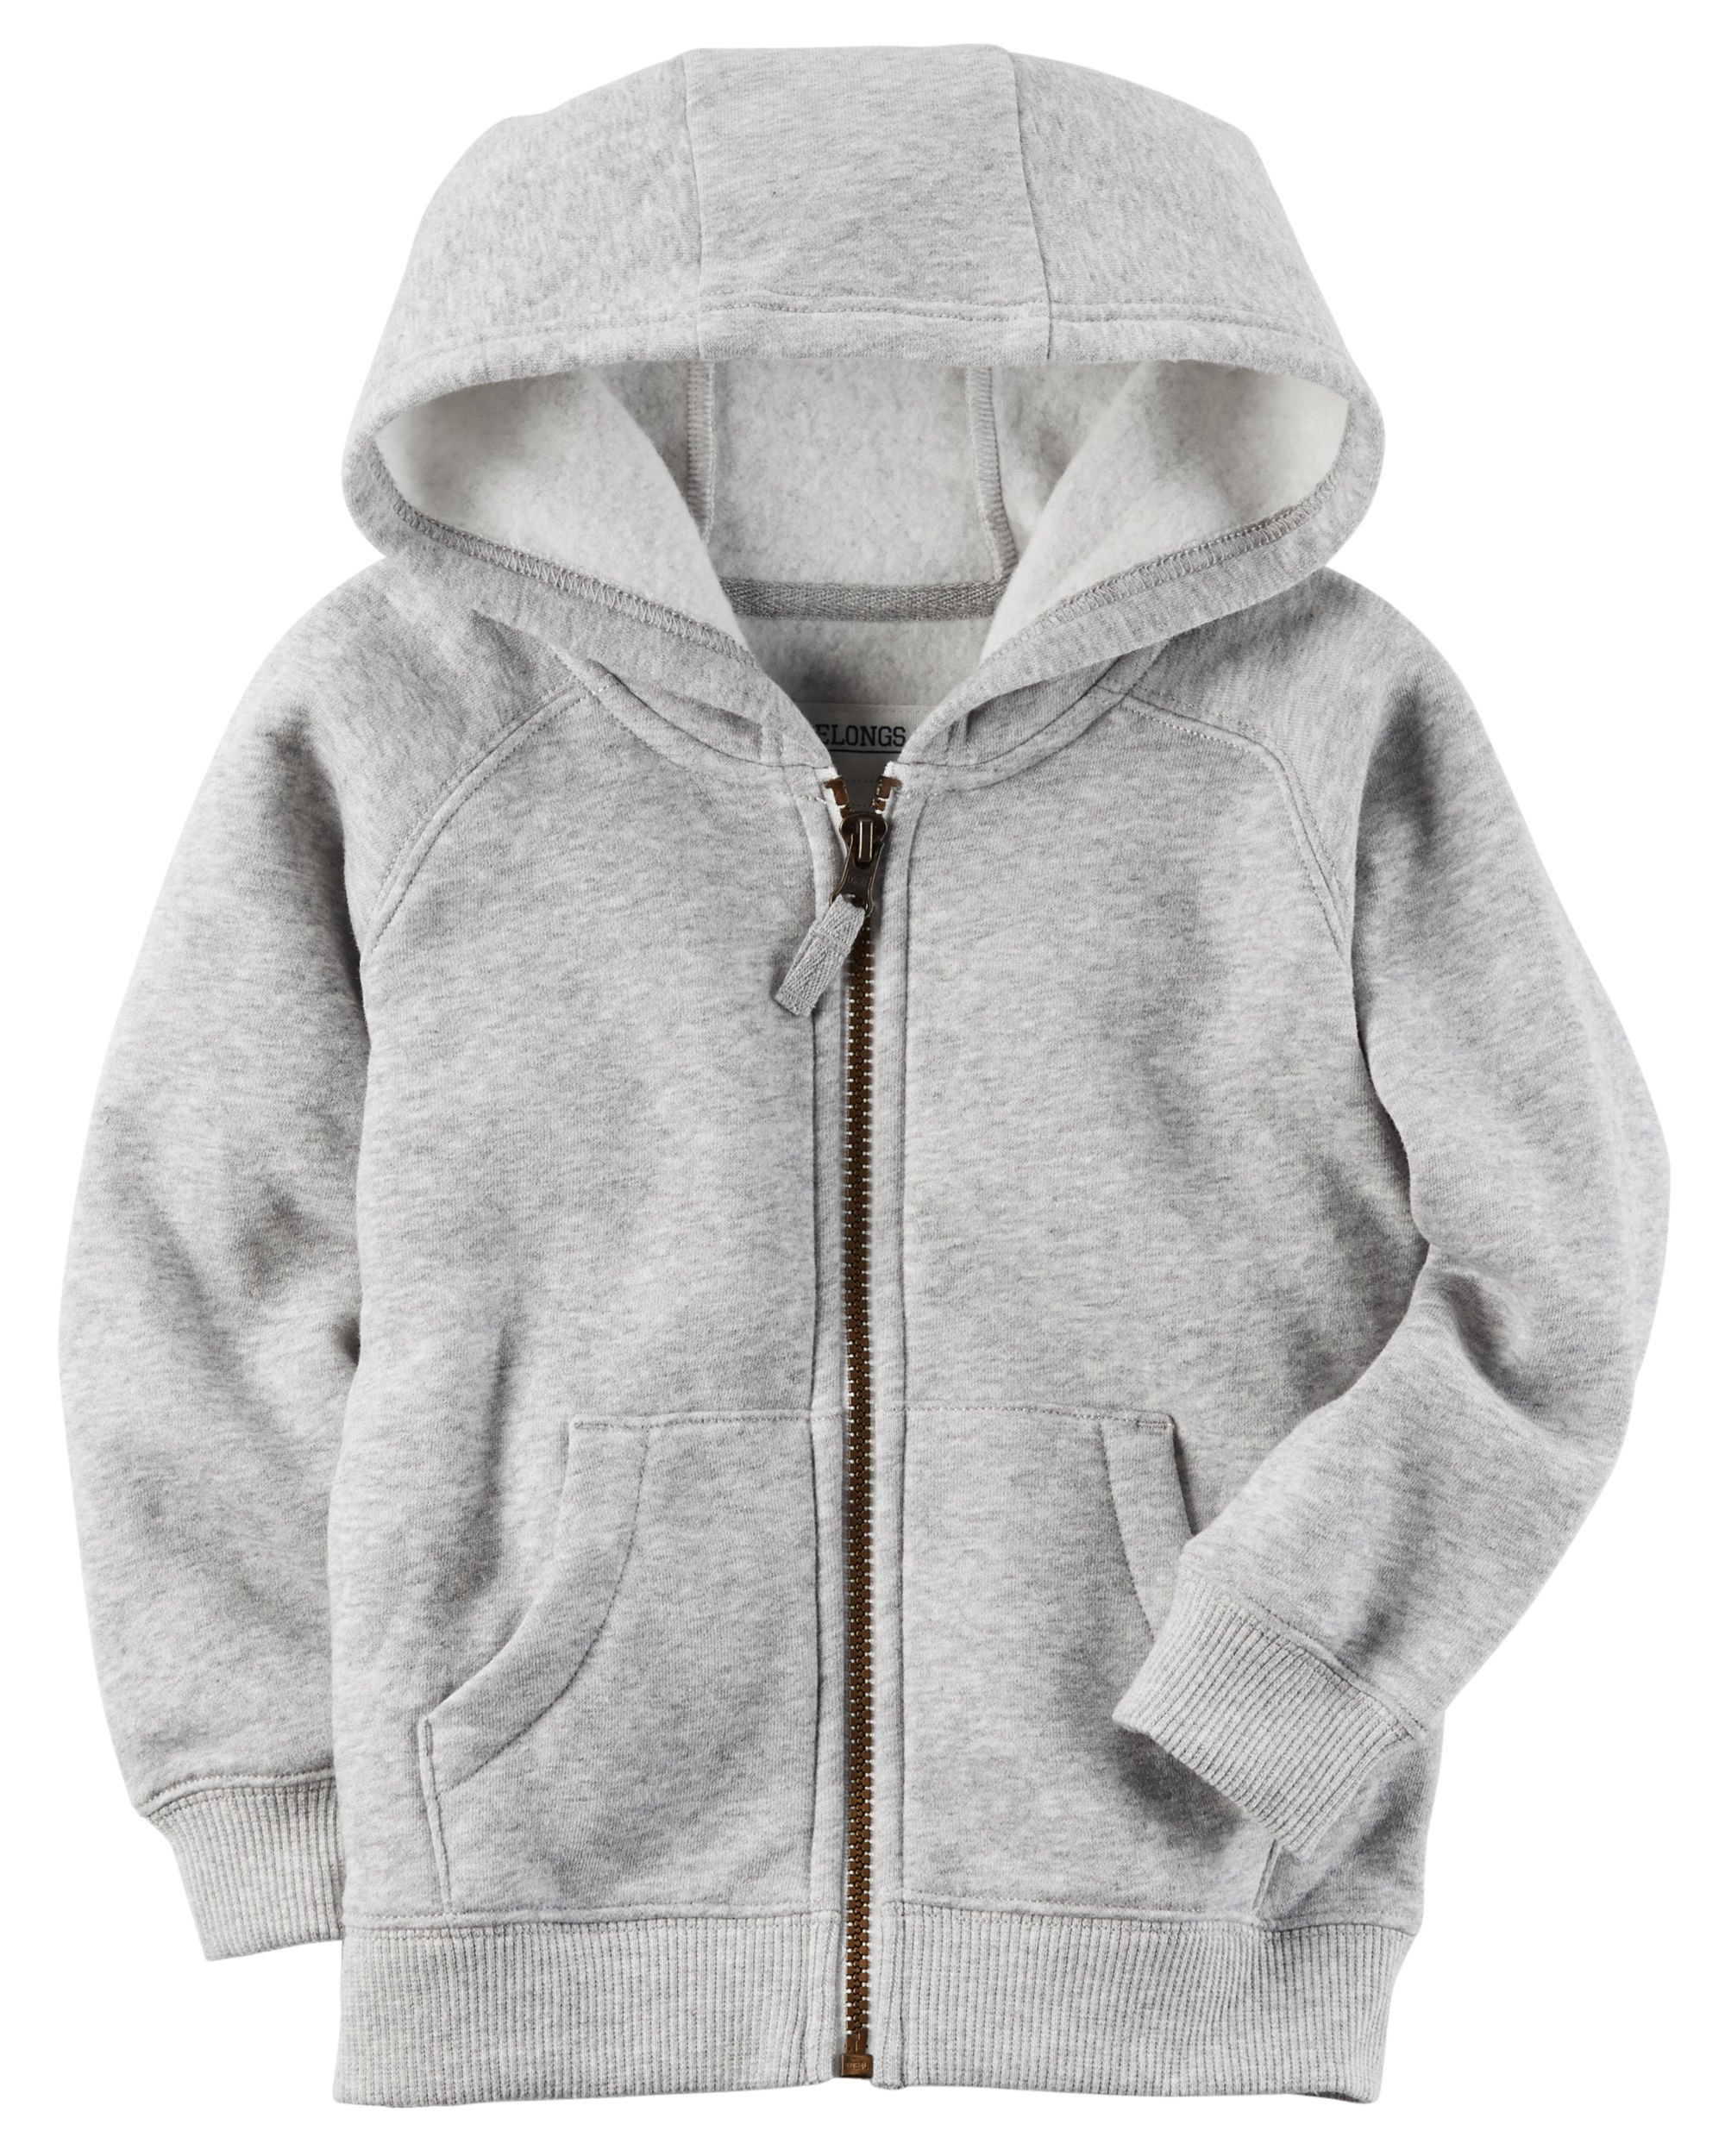 Carter's Baby Boys' Cardigan 18 Months, Gray by Carter's